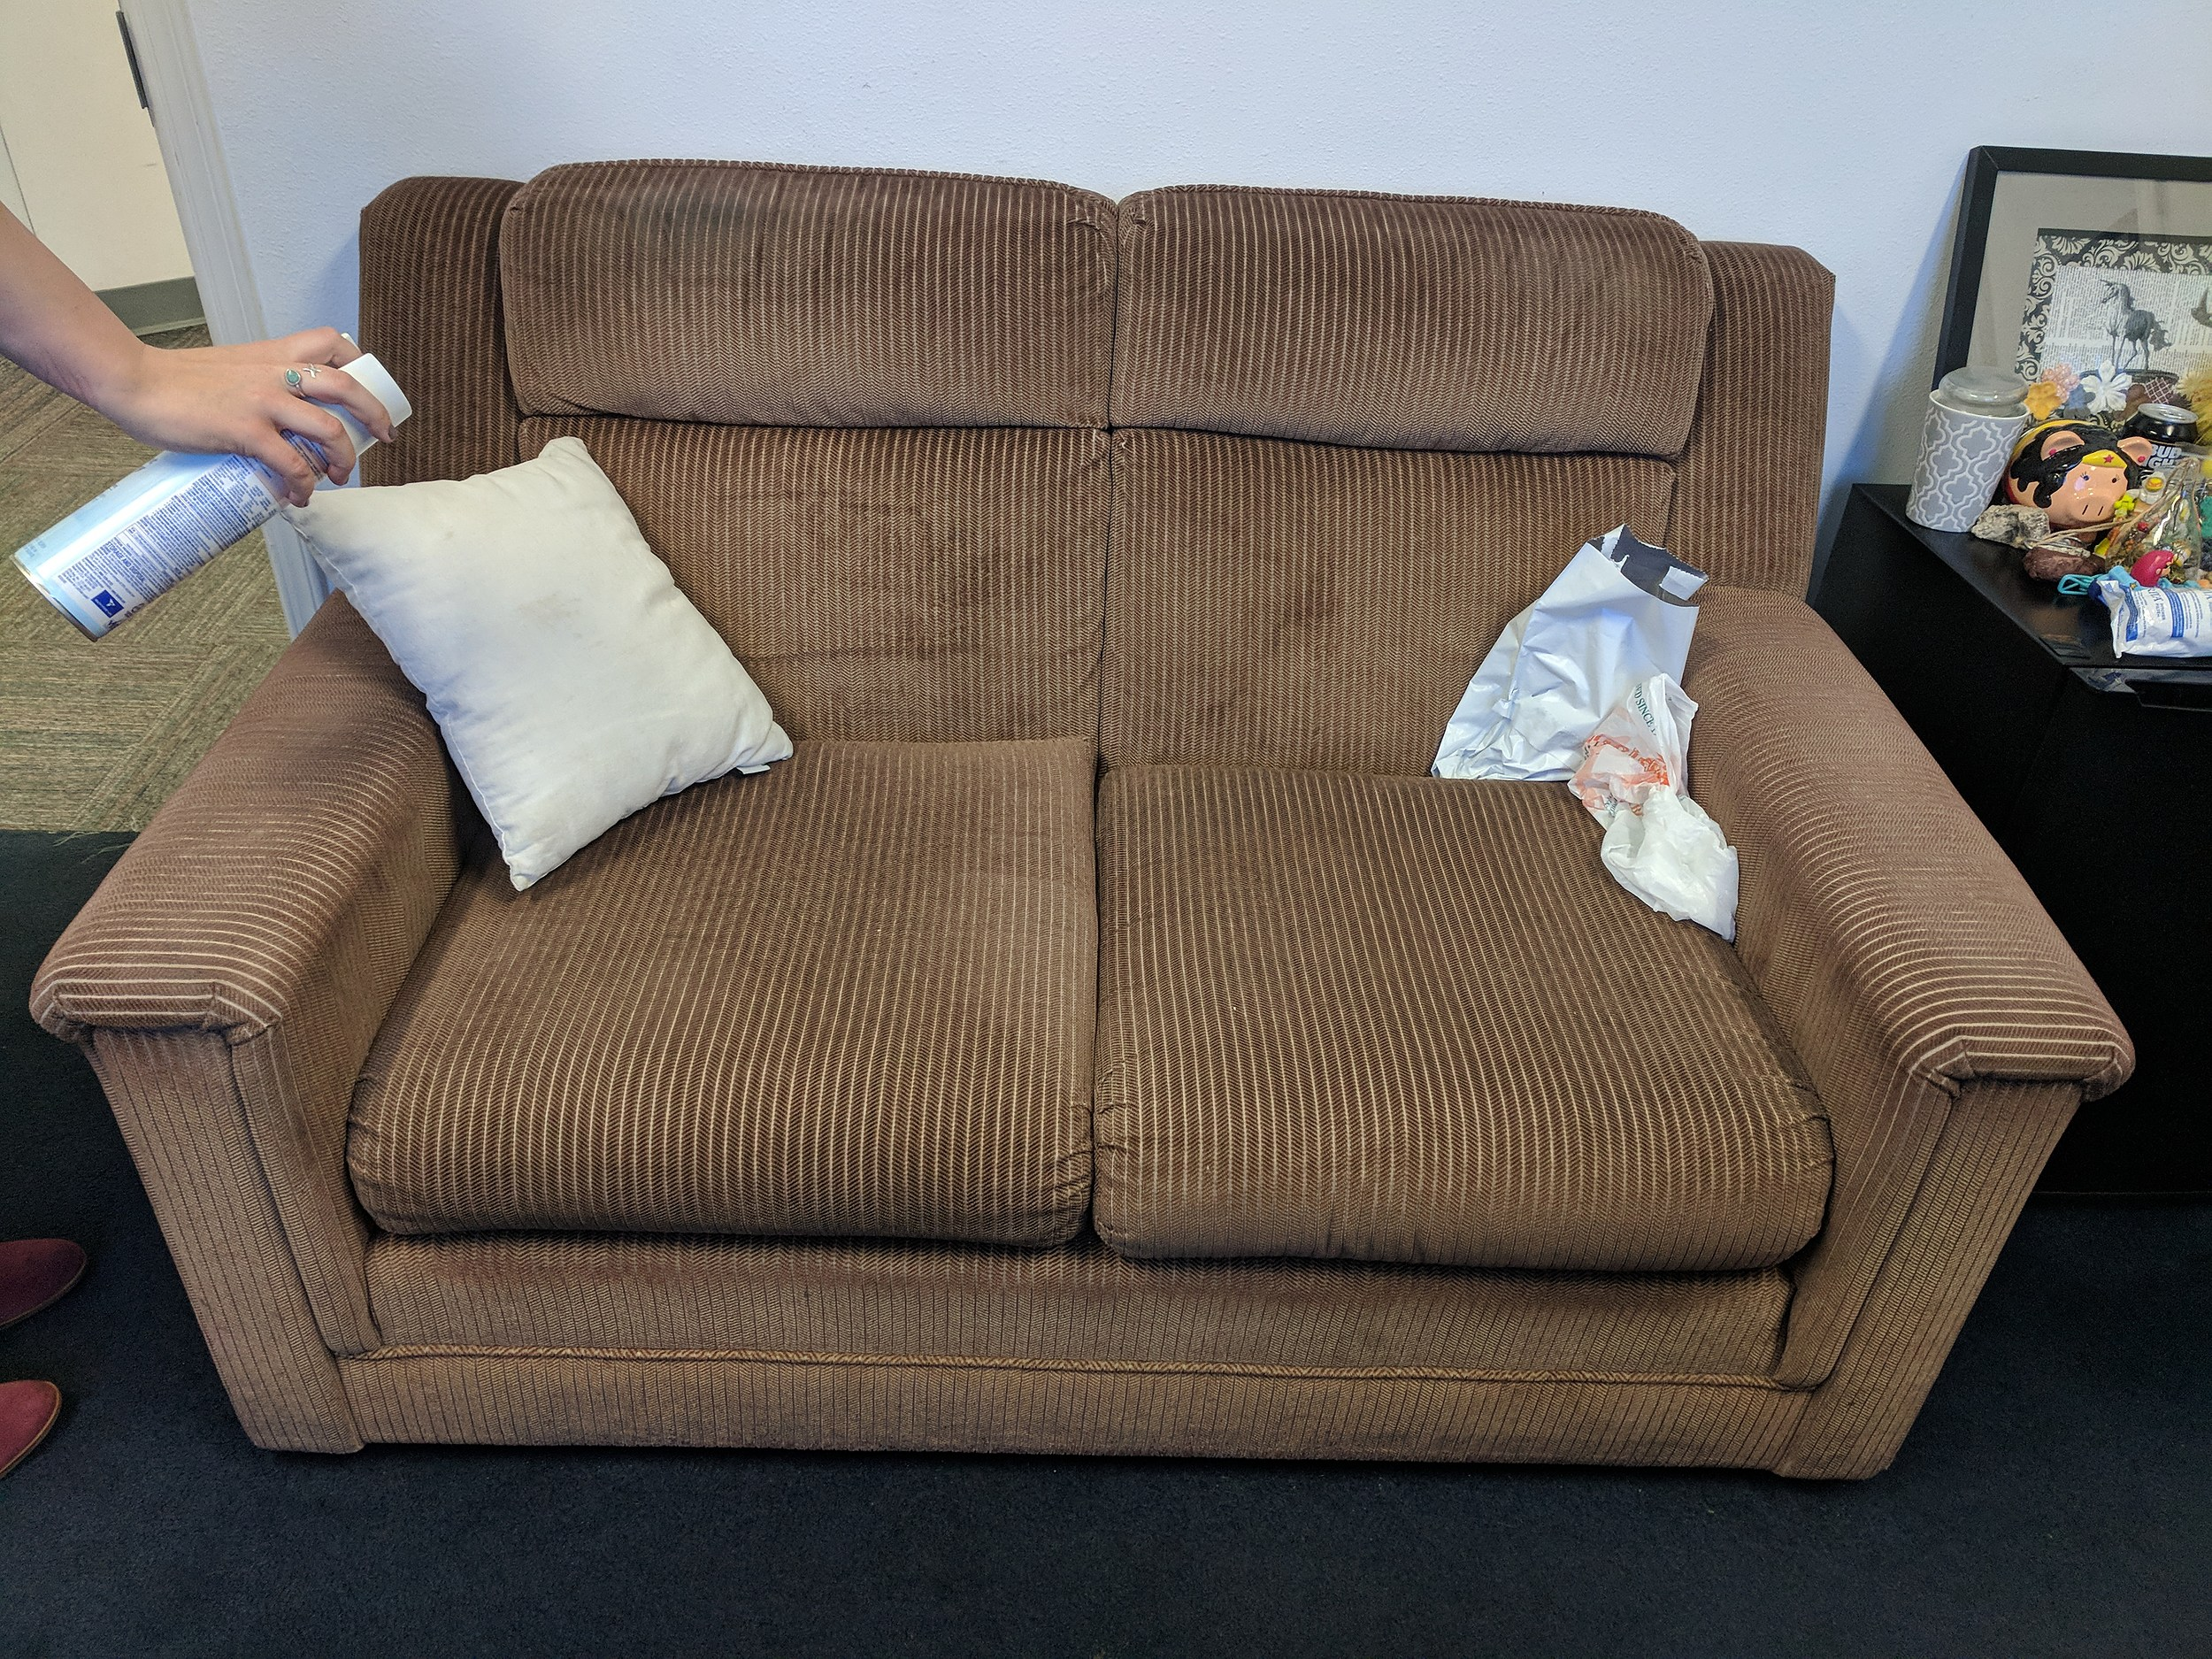 UPDATED: Ugly Couch Contest Entries